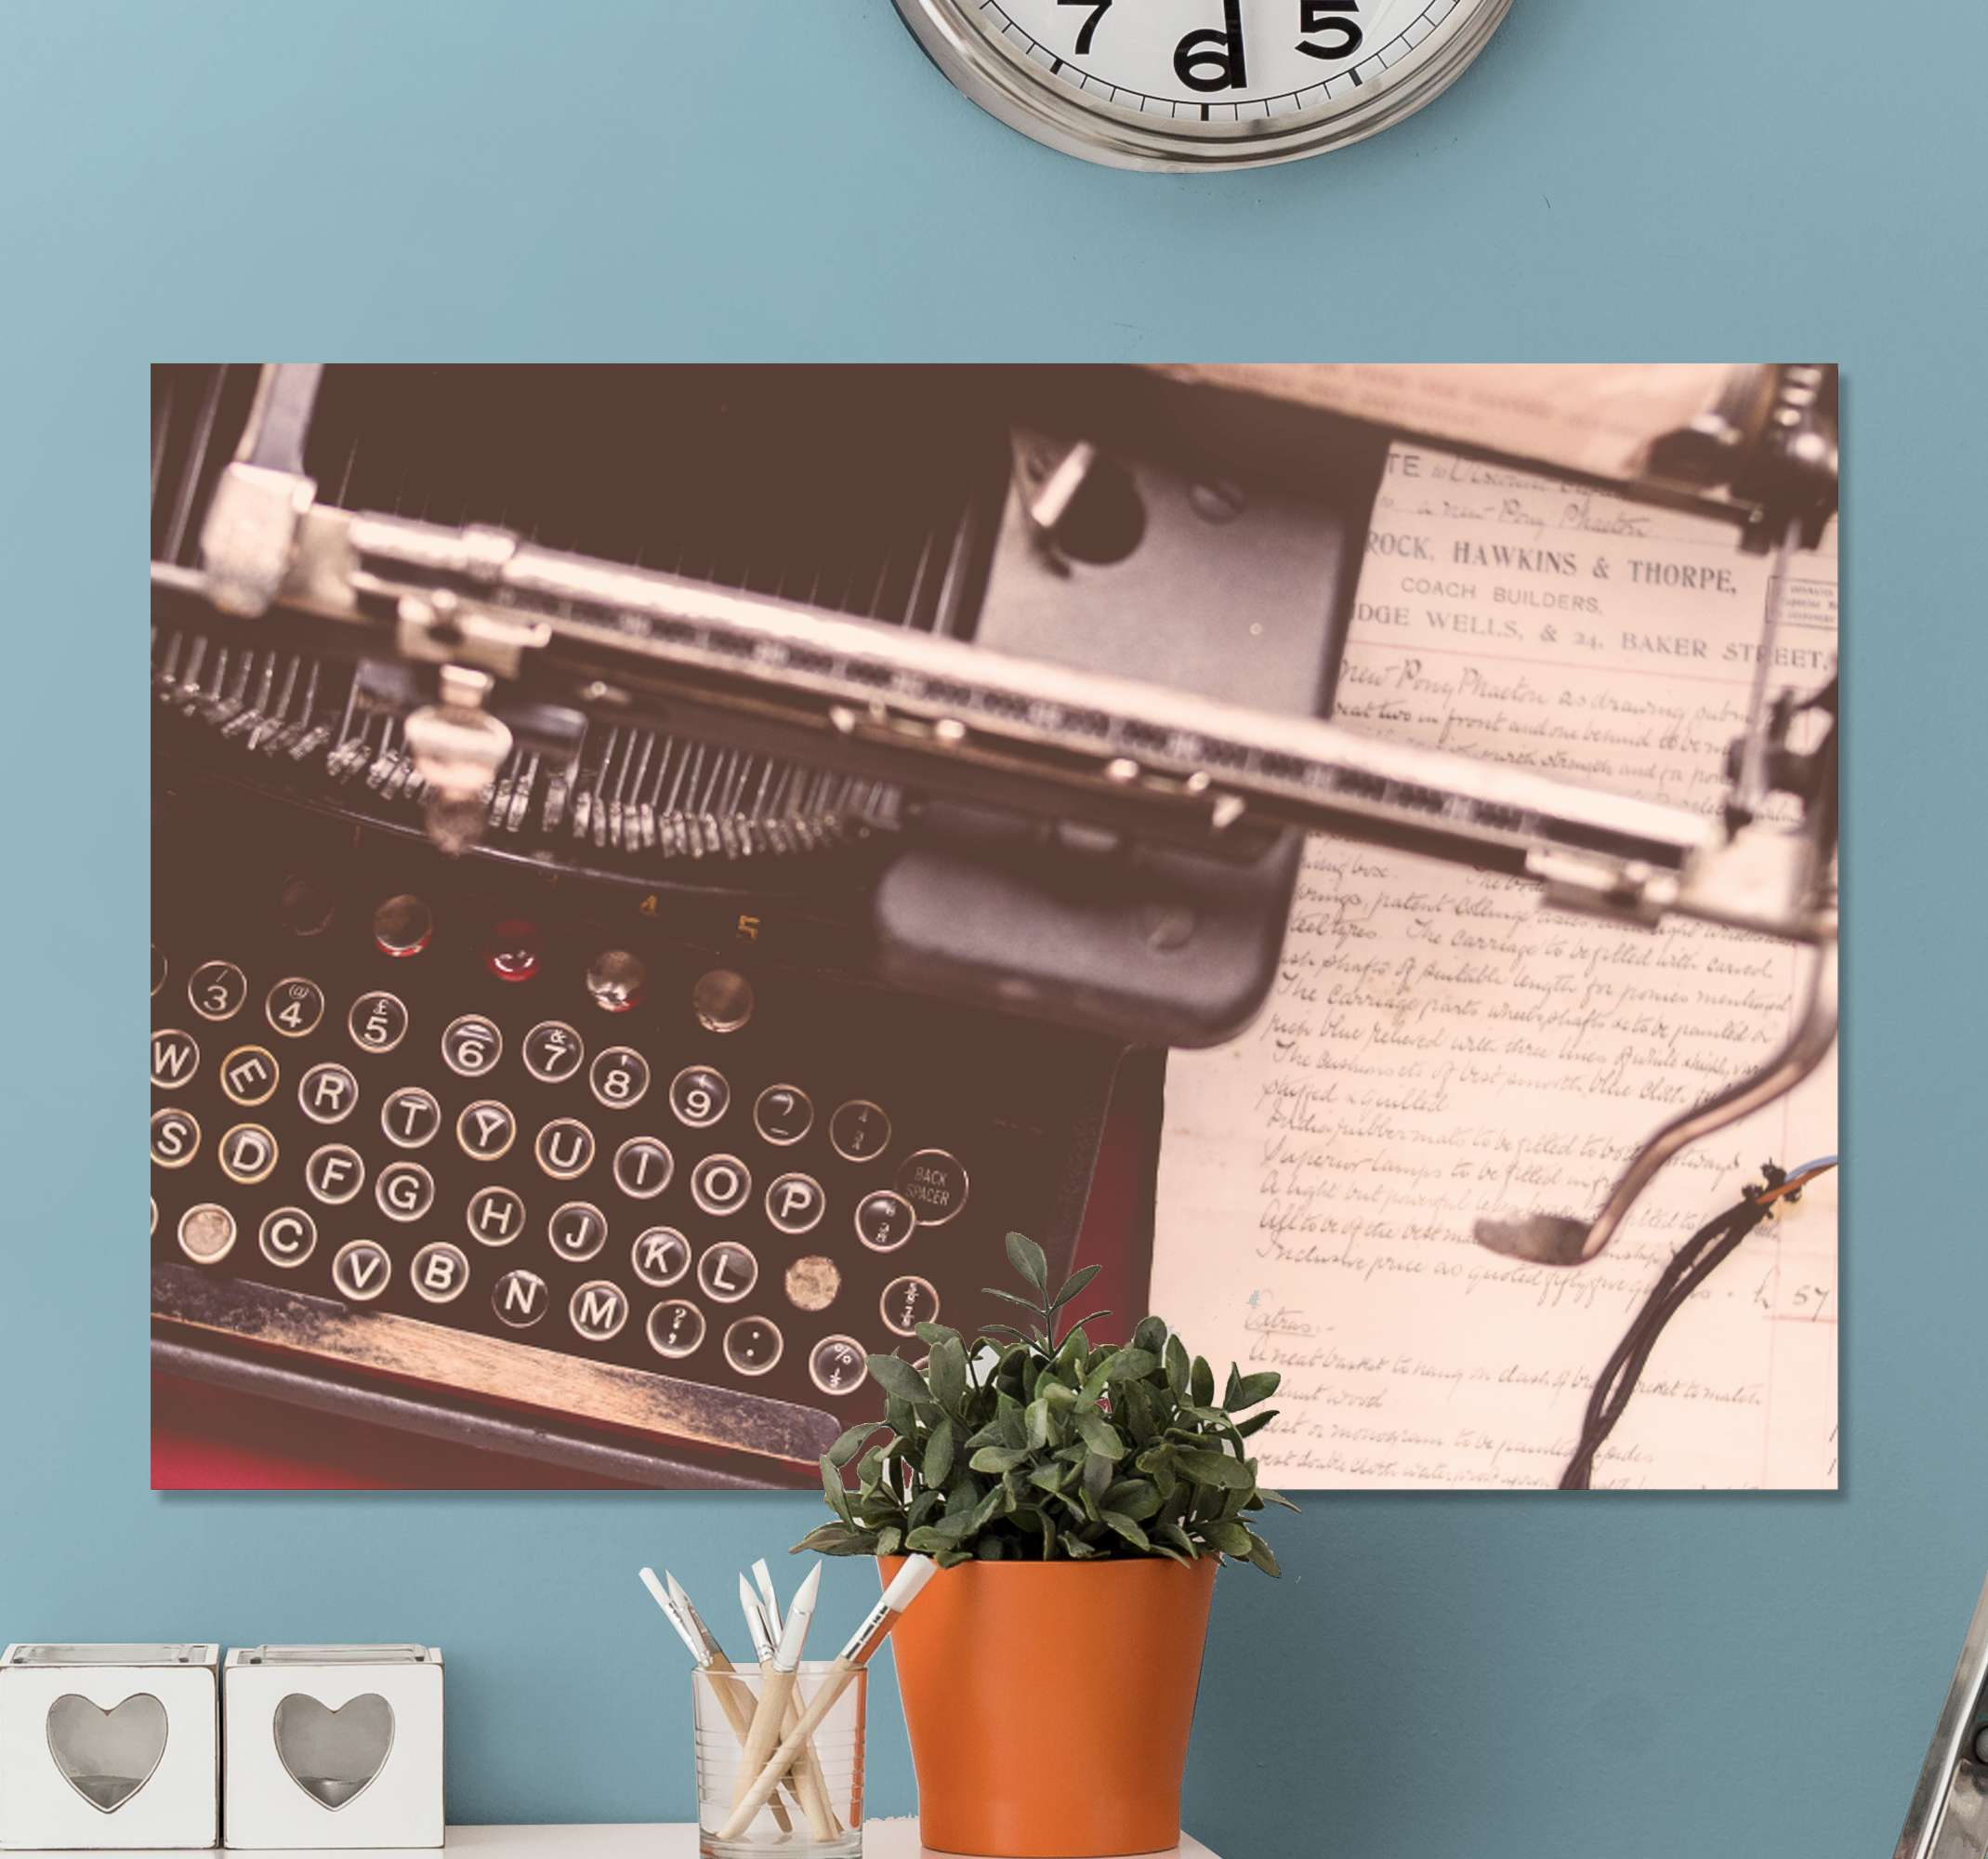 TenStickers. Phone and typewriter vintage wall prints. Upgrade your room or space with a vintage look and effect with this retro typewriter retro canvas art. Made from quality material and it is durable.